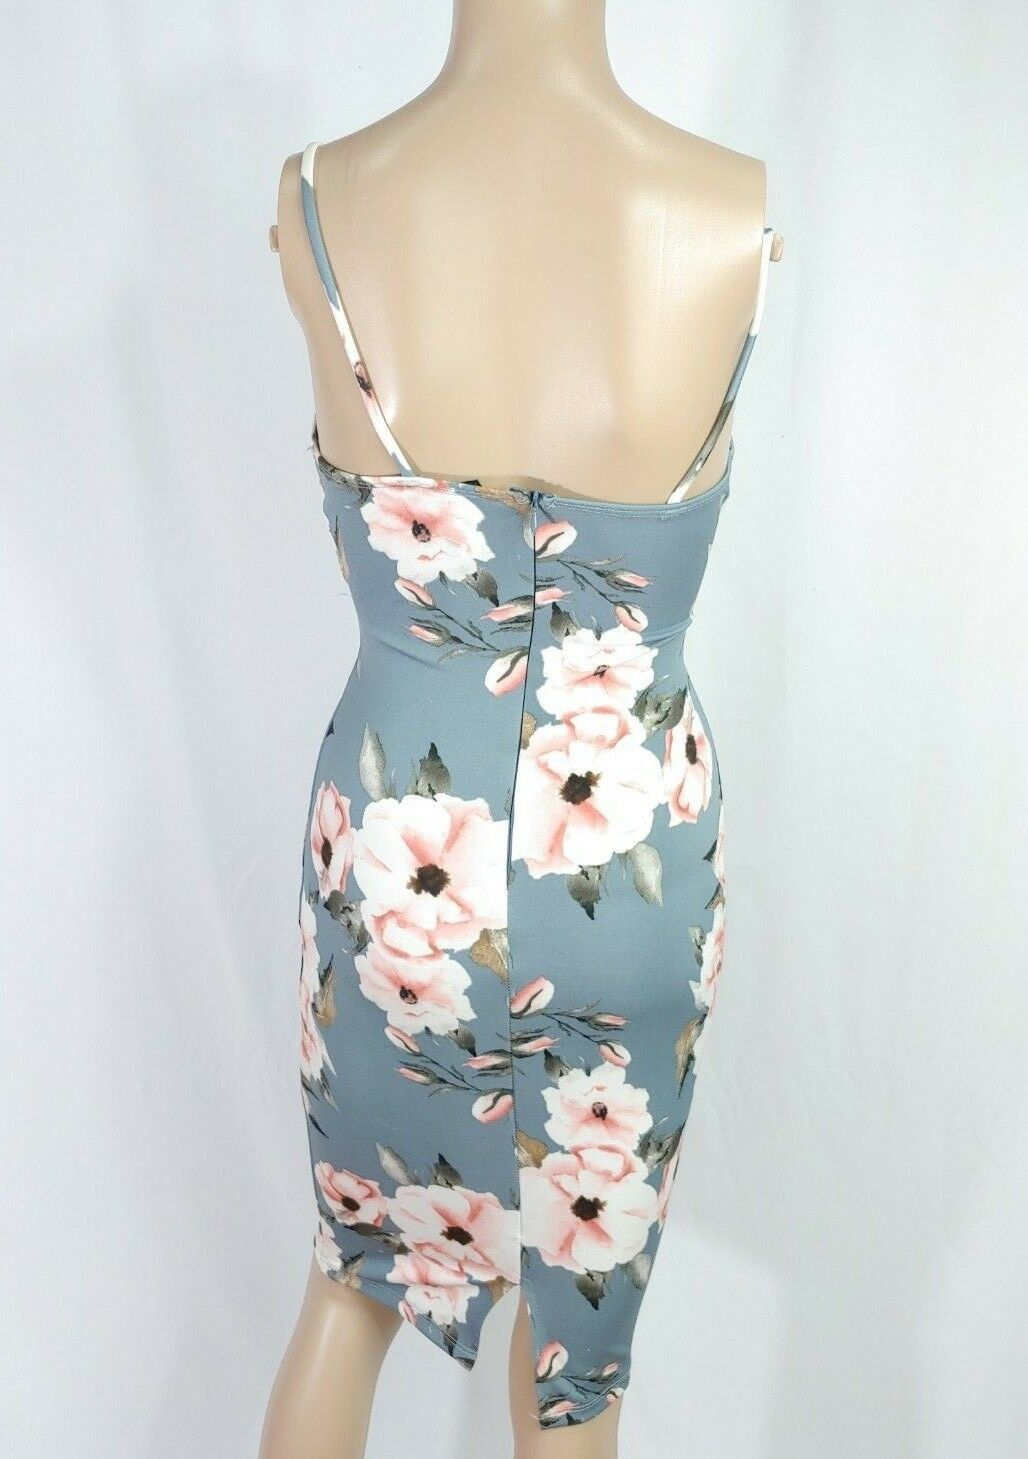 Windsor Gray Pink Poppy Floral Criss Cross Cut Out Wrap Bodycon Cocktail Dress S